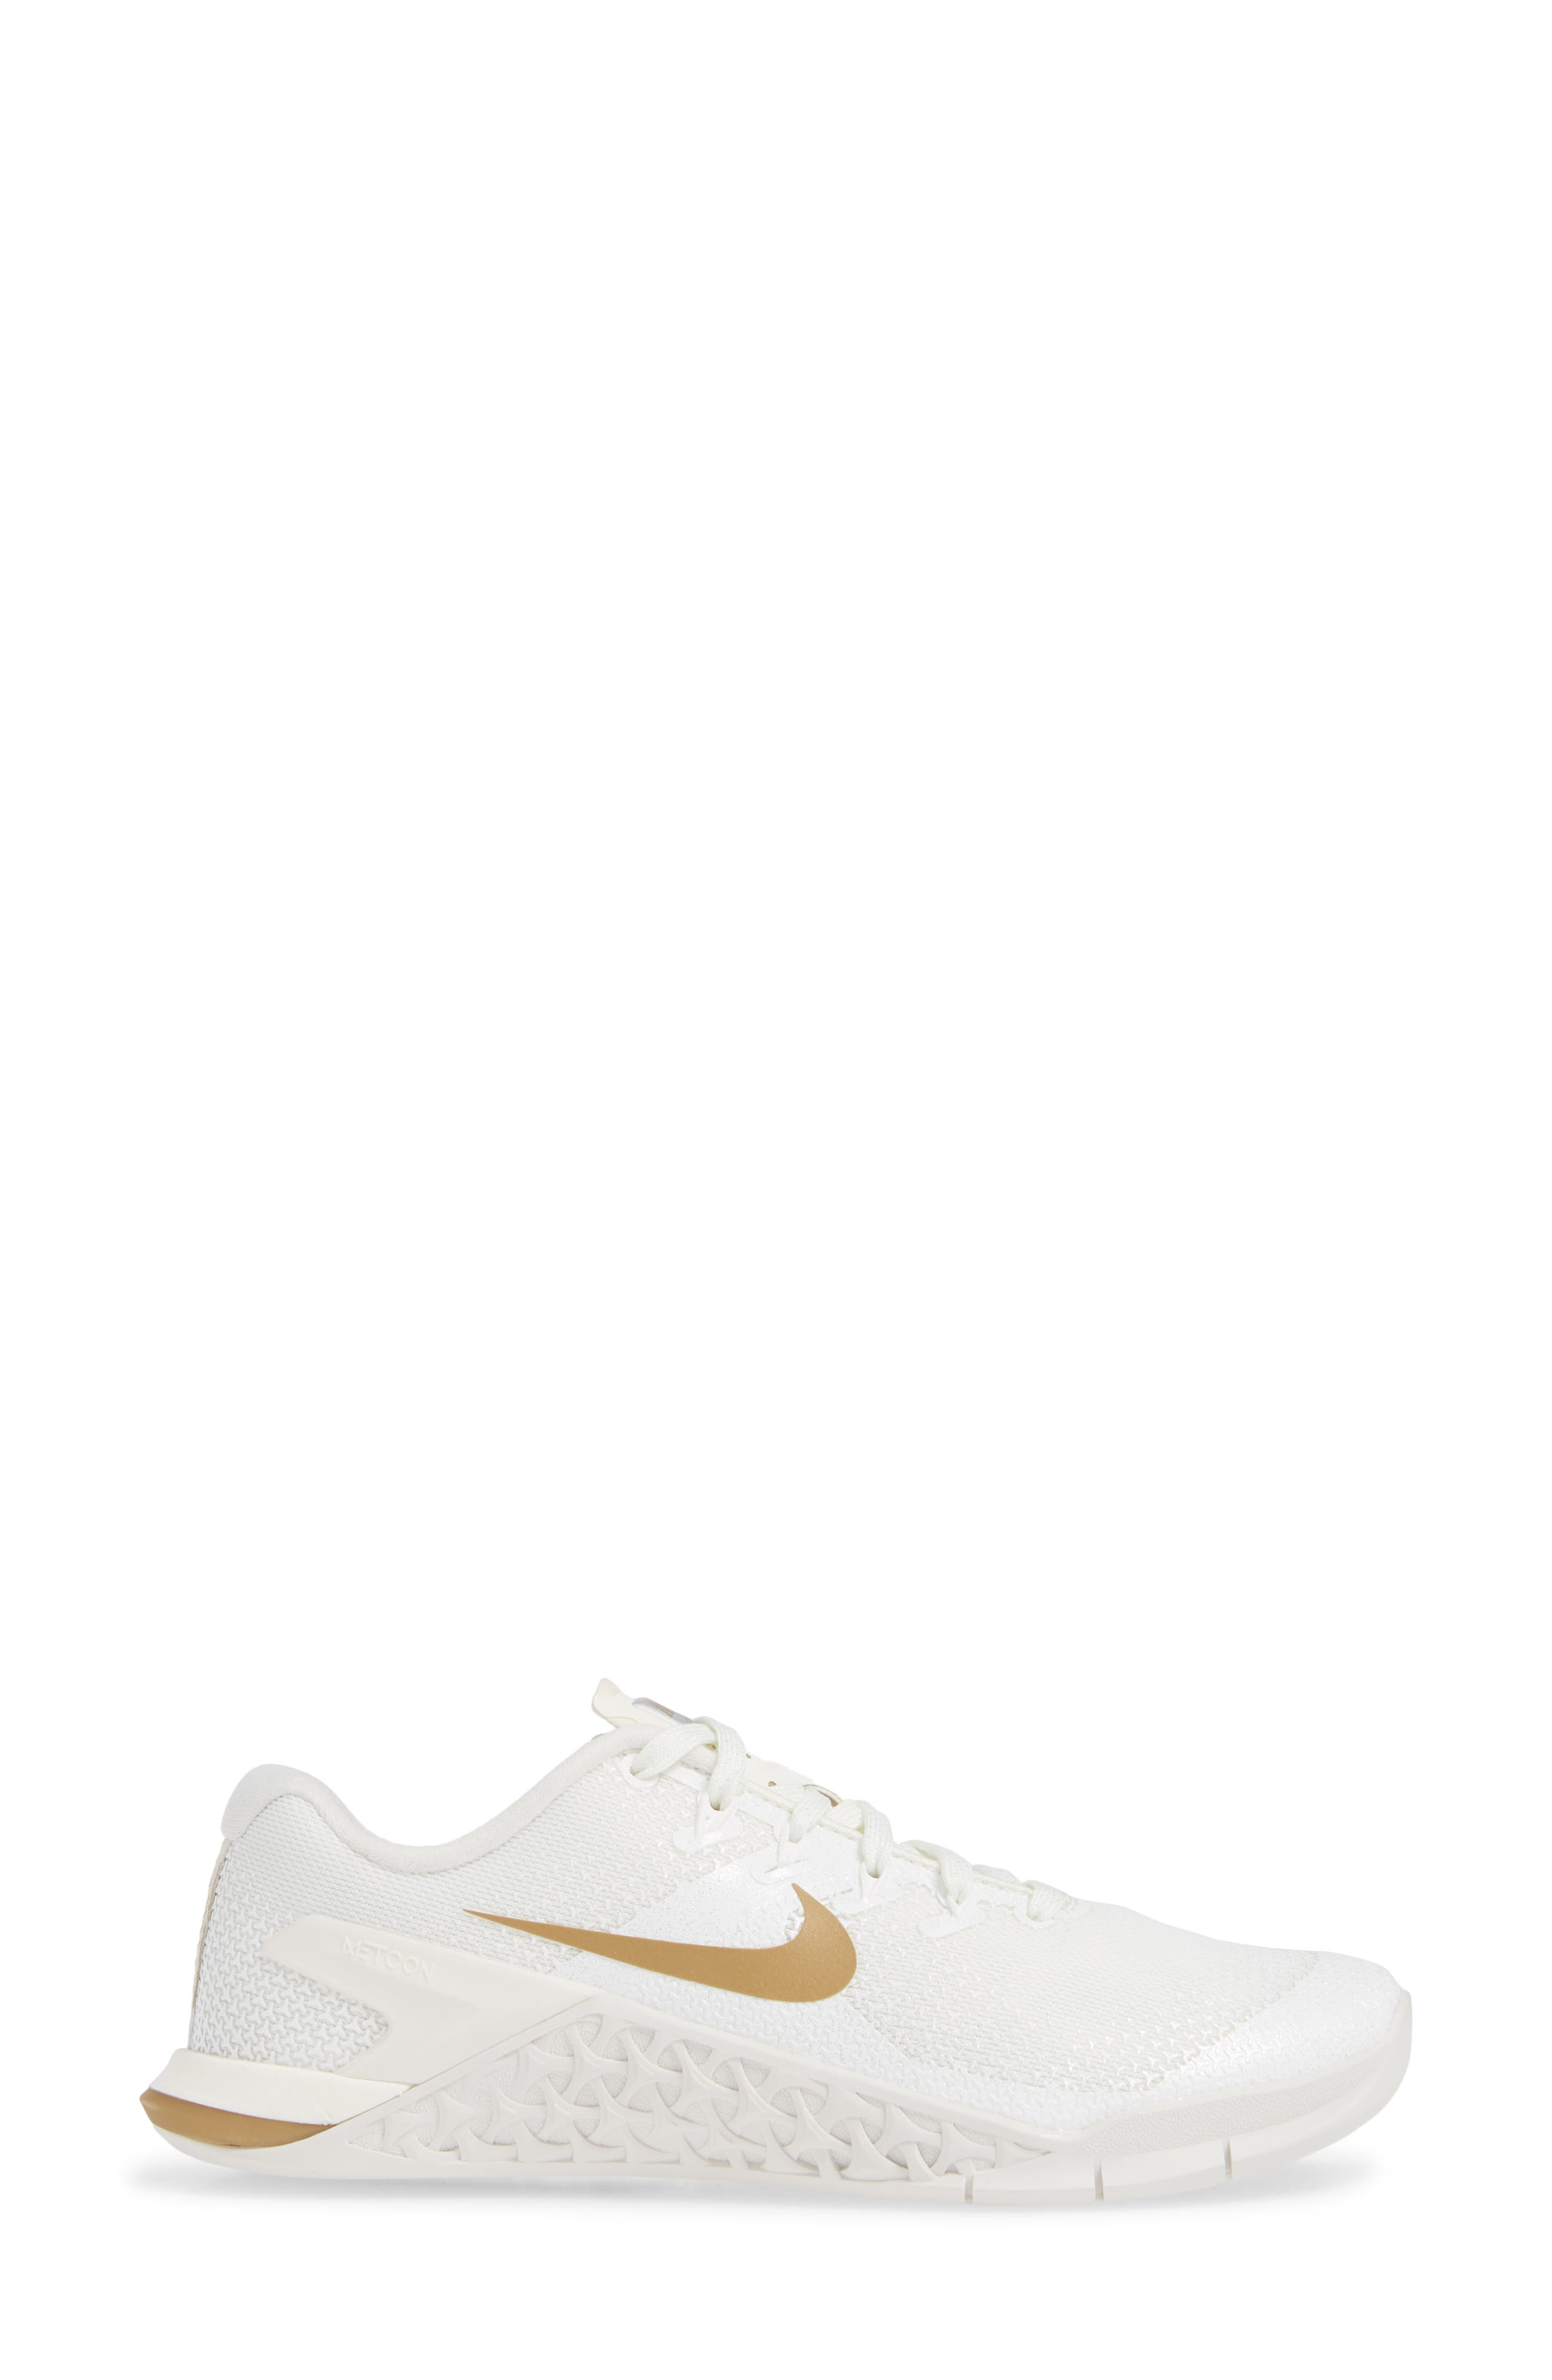 Metcon 4 Training Shoe,                             Alternate thumbnail 3, color,                             CHAMPAGNE